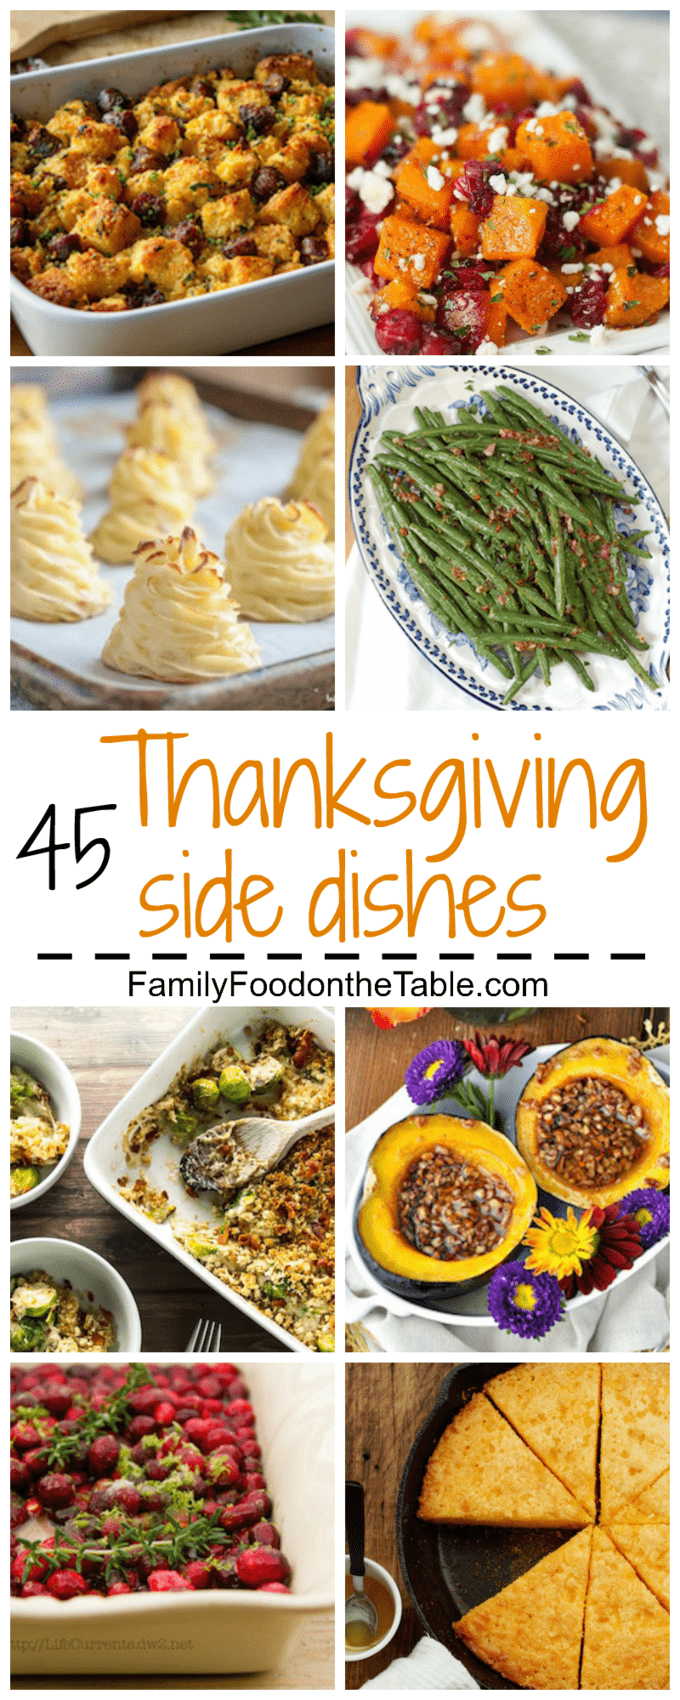 45 Thanksgiving sides - a huge round-up of recipes and inspiration for your holiday table, including vegan, gluten-free and low-carb options! | FamilyFoodontheTable.com